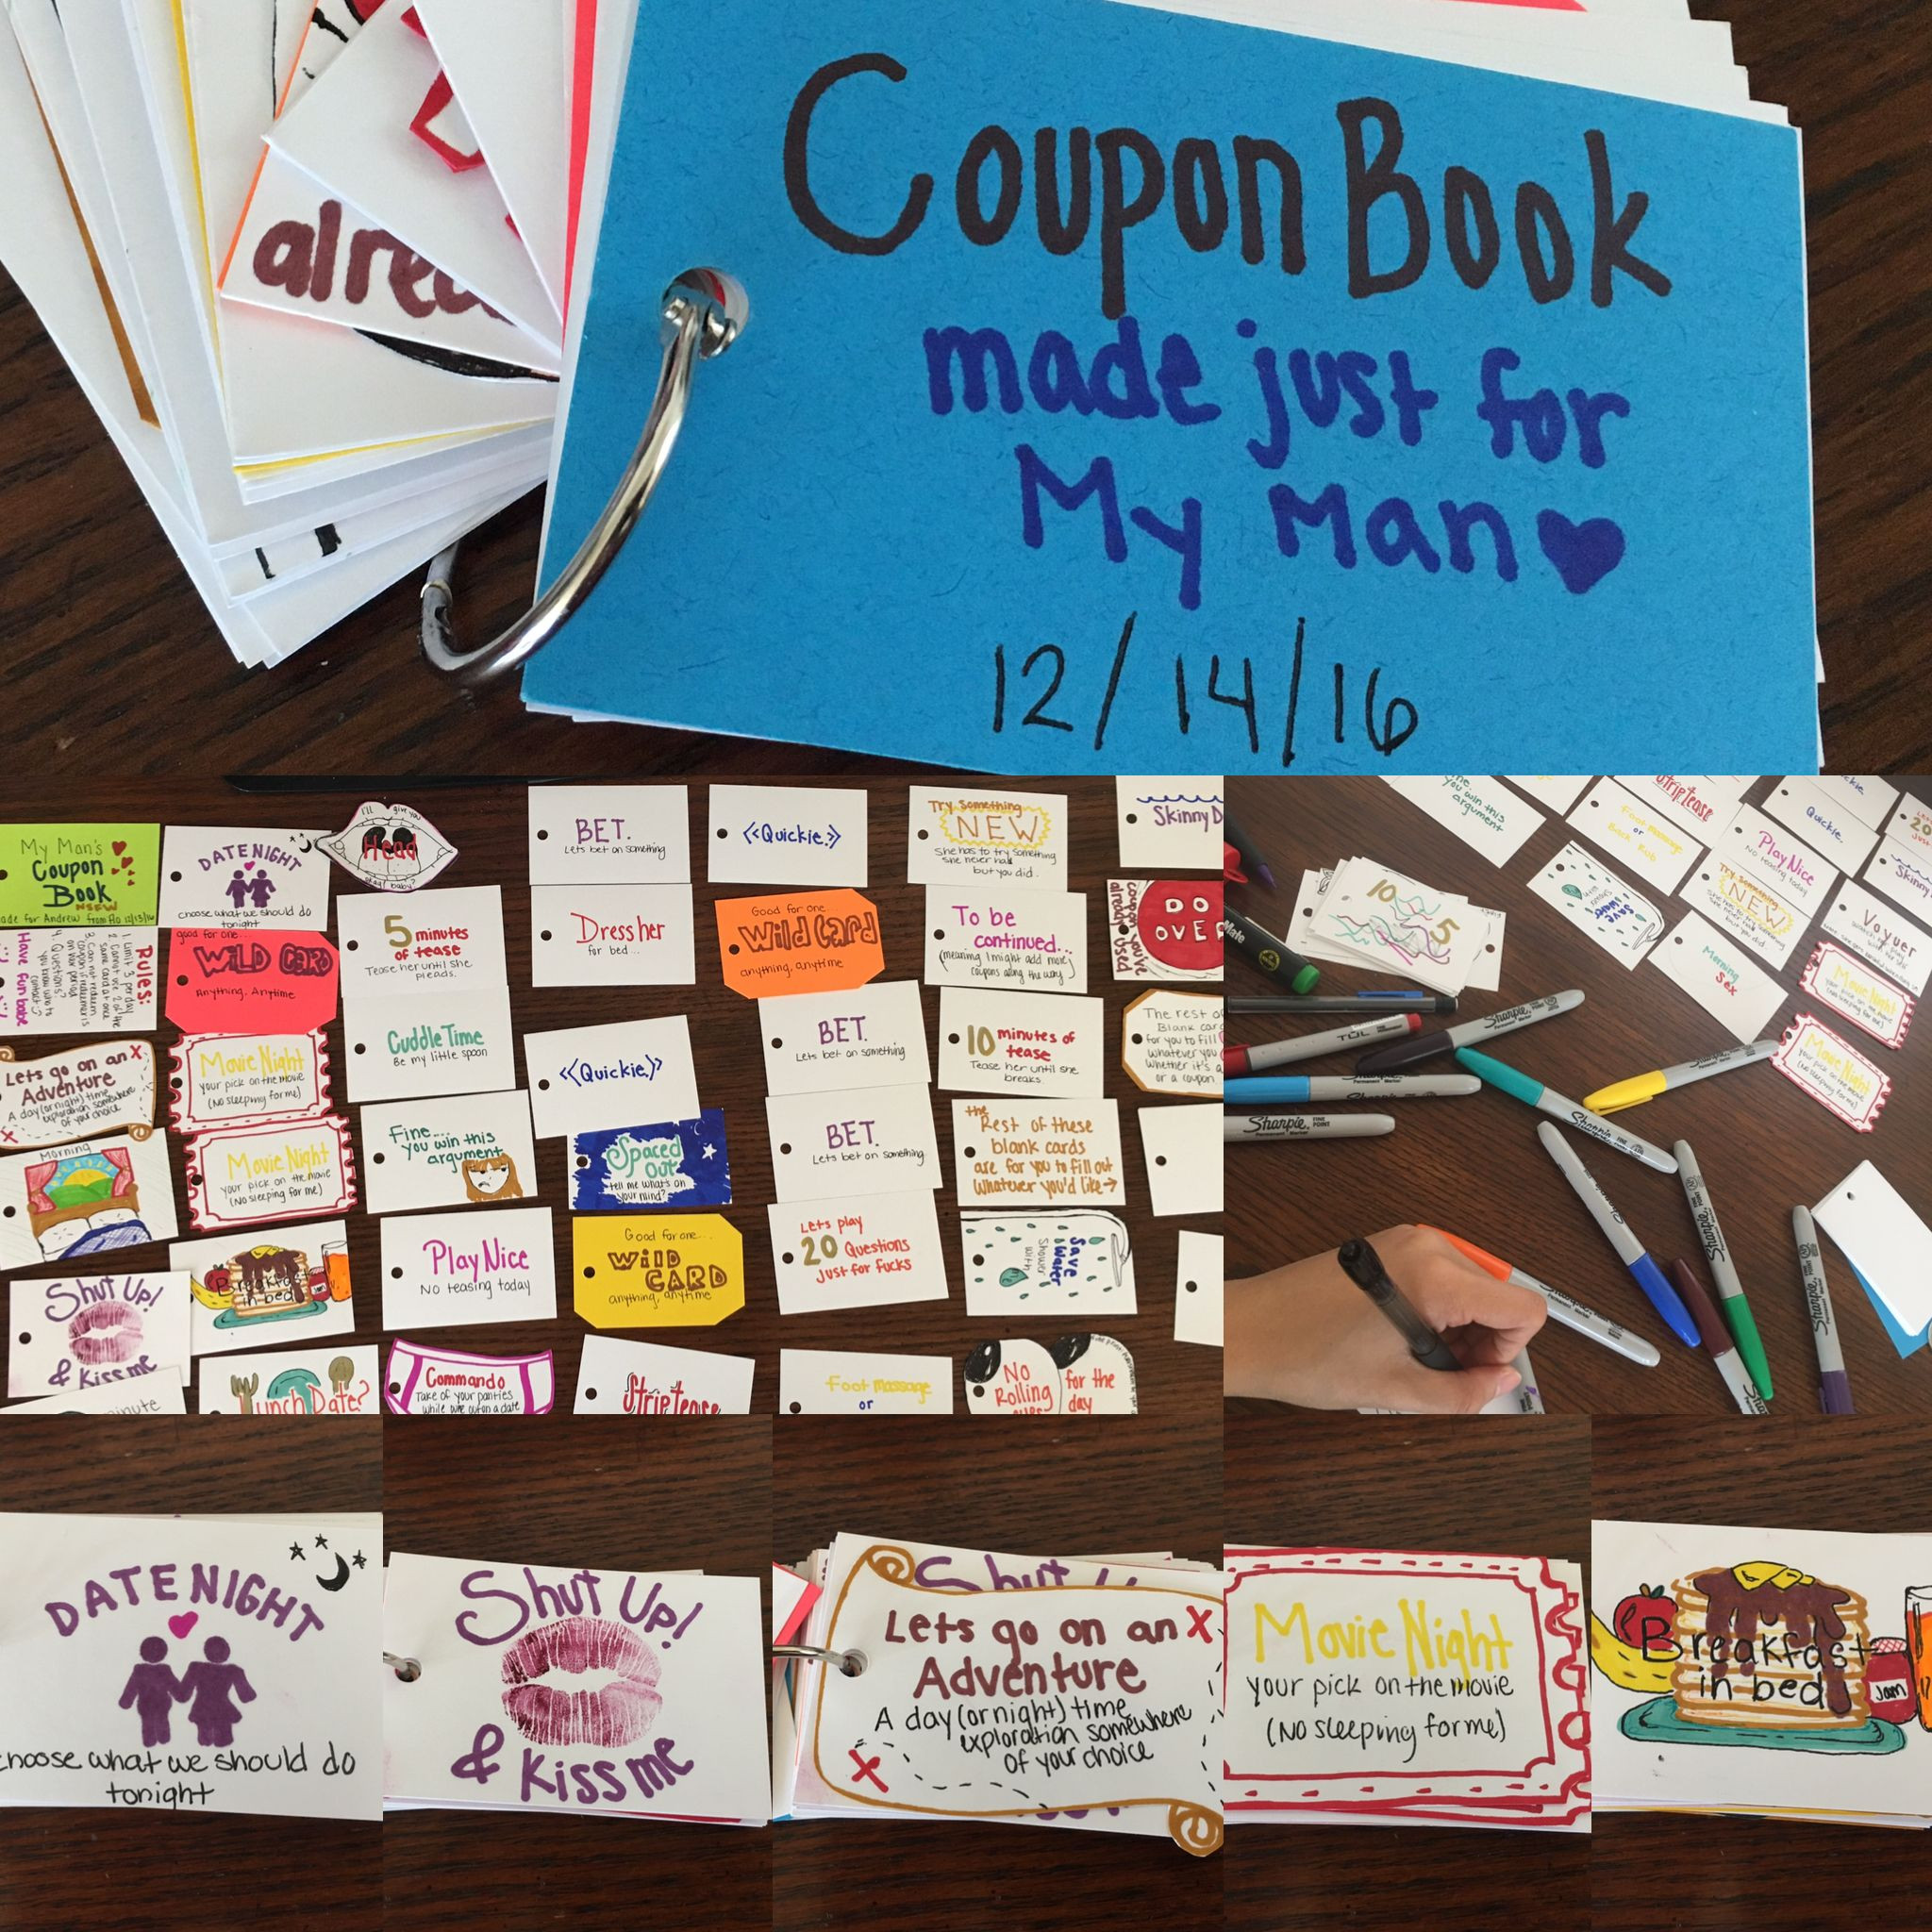 Best ideas about DIY Boyfriend Christmas Gifts . Save or Pin A coupon book made for my boyfriend as a Christmas t Now.